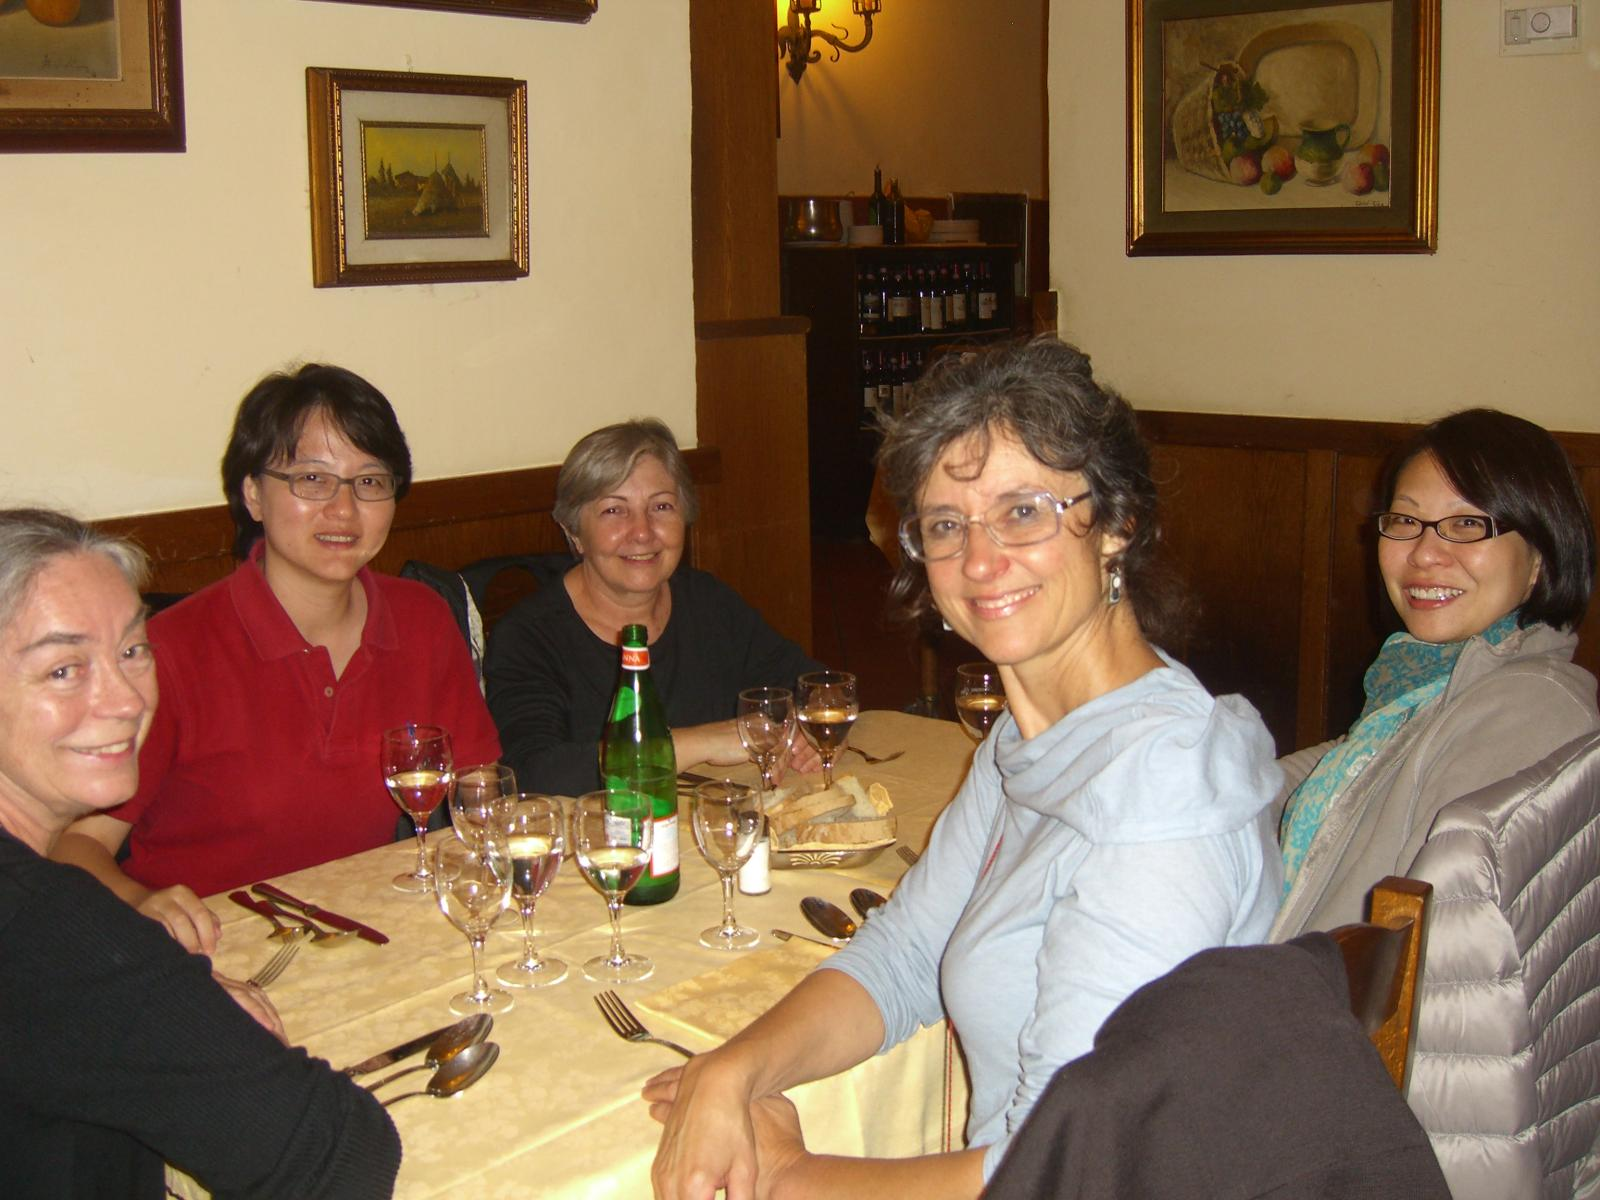 Day 1 - Florence, Italy -  Dinner at Mamma Gina's